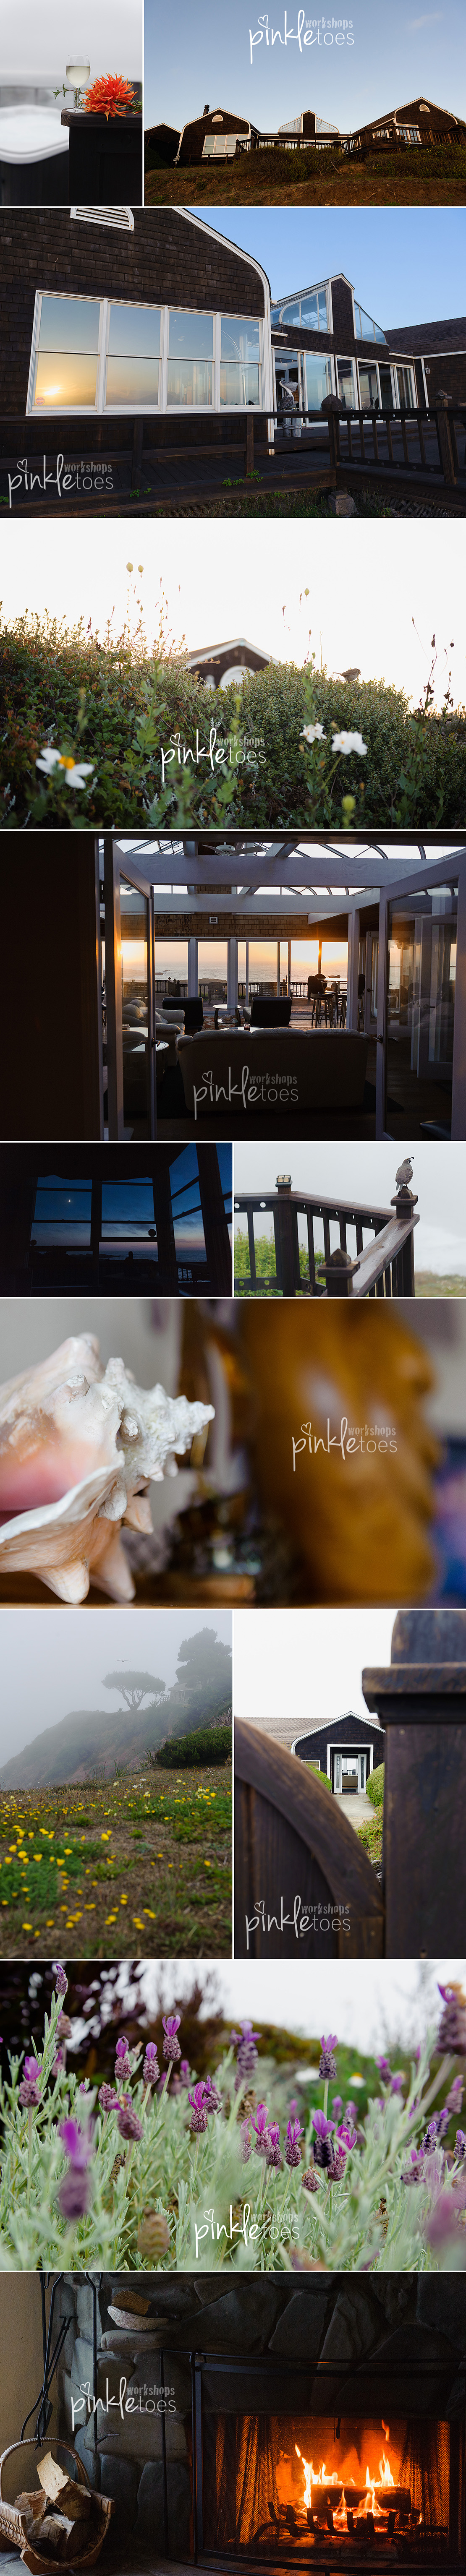 mendocino-house-pinkle-toes-photography-workshops-california-texas-australia-sydney